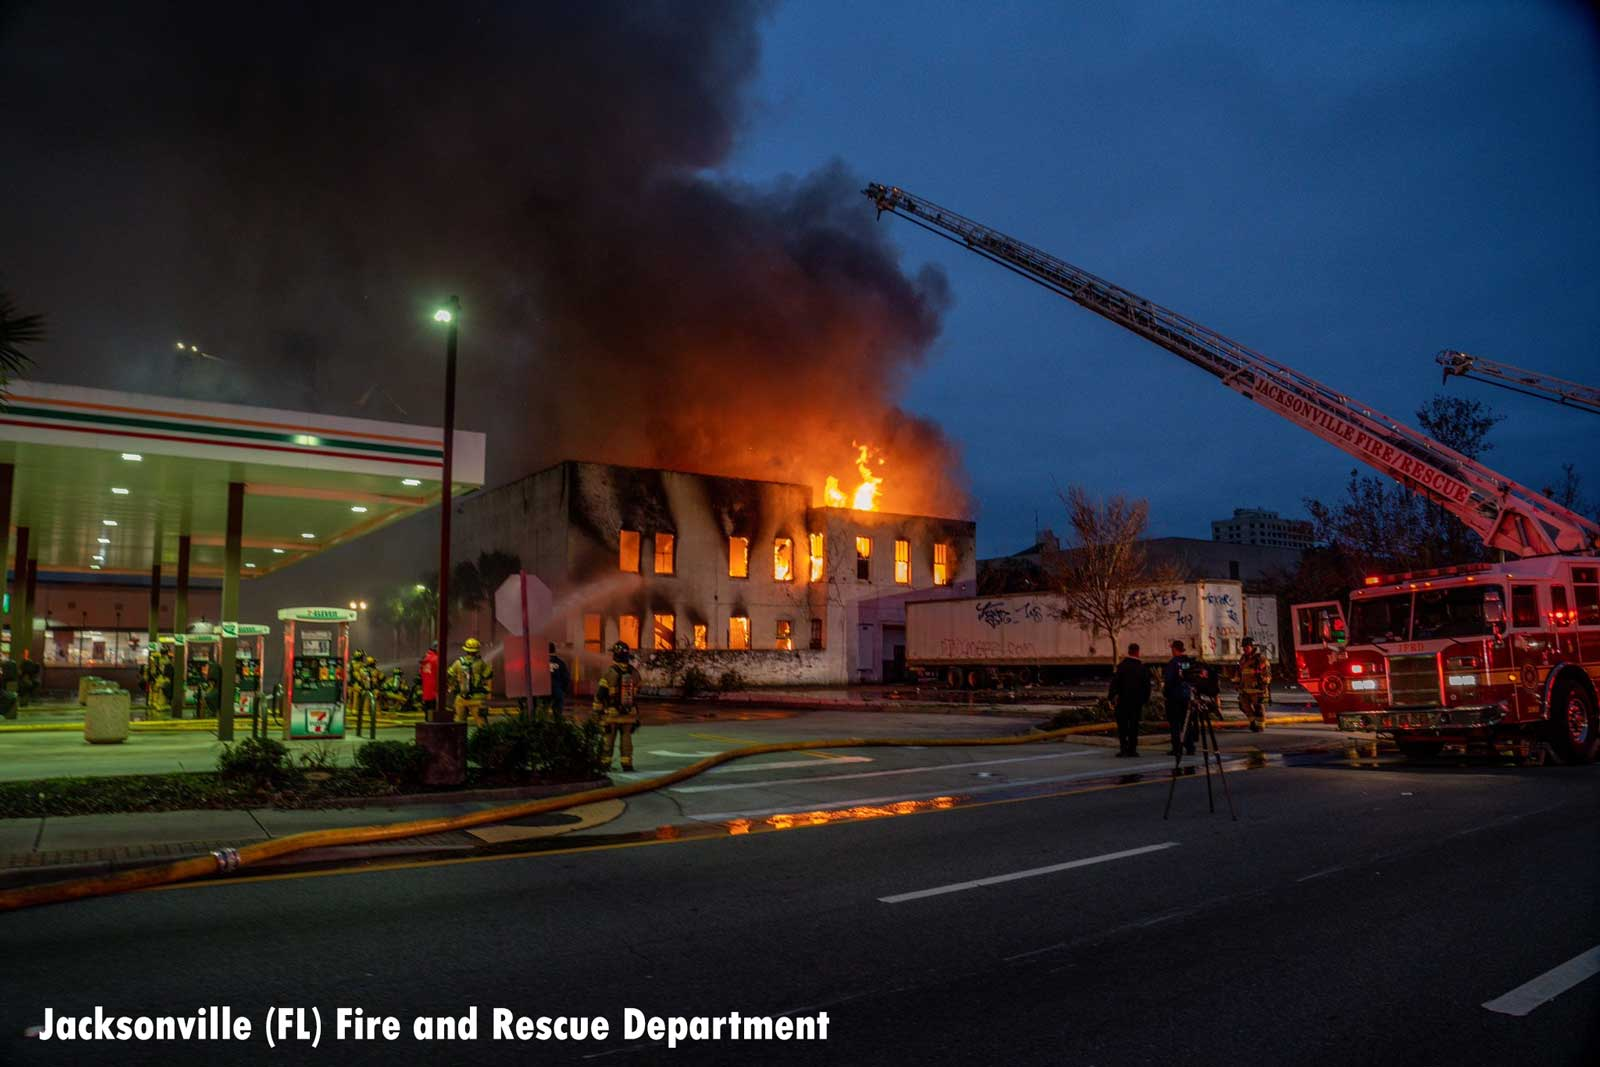 Flames shooting from a commercial building in Jacksonville as firefighters raised aerial